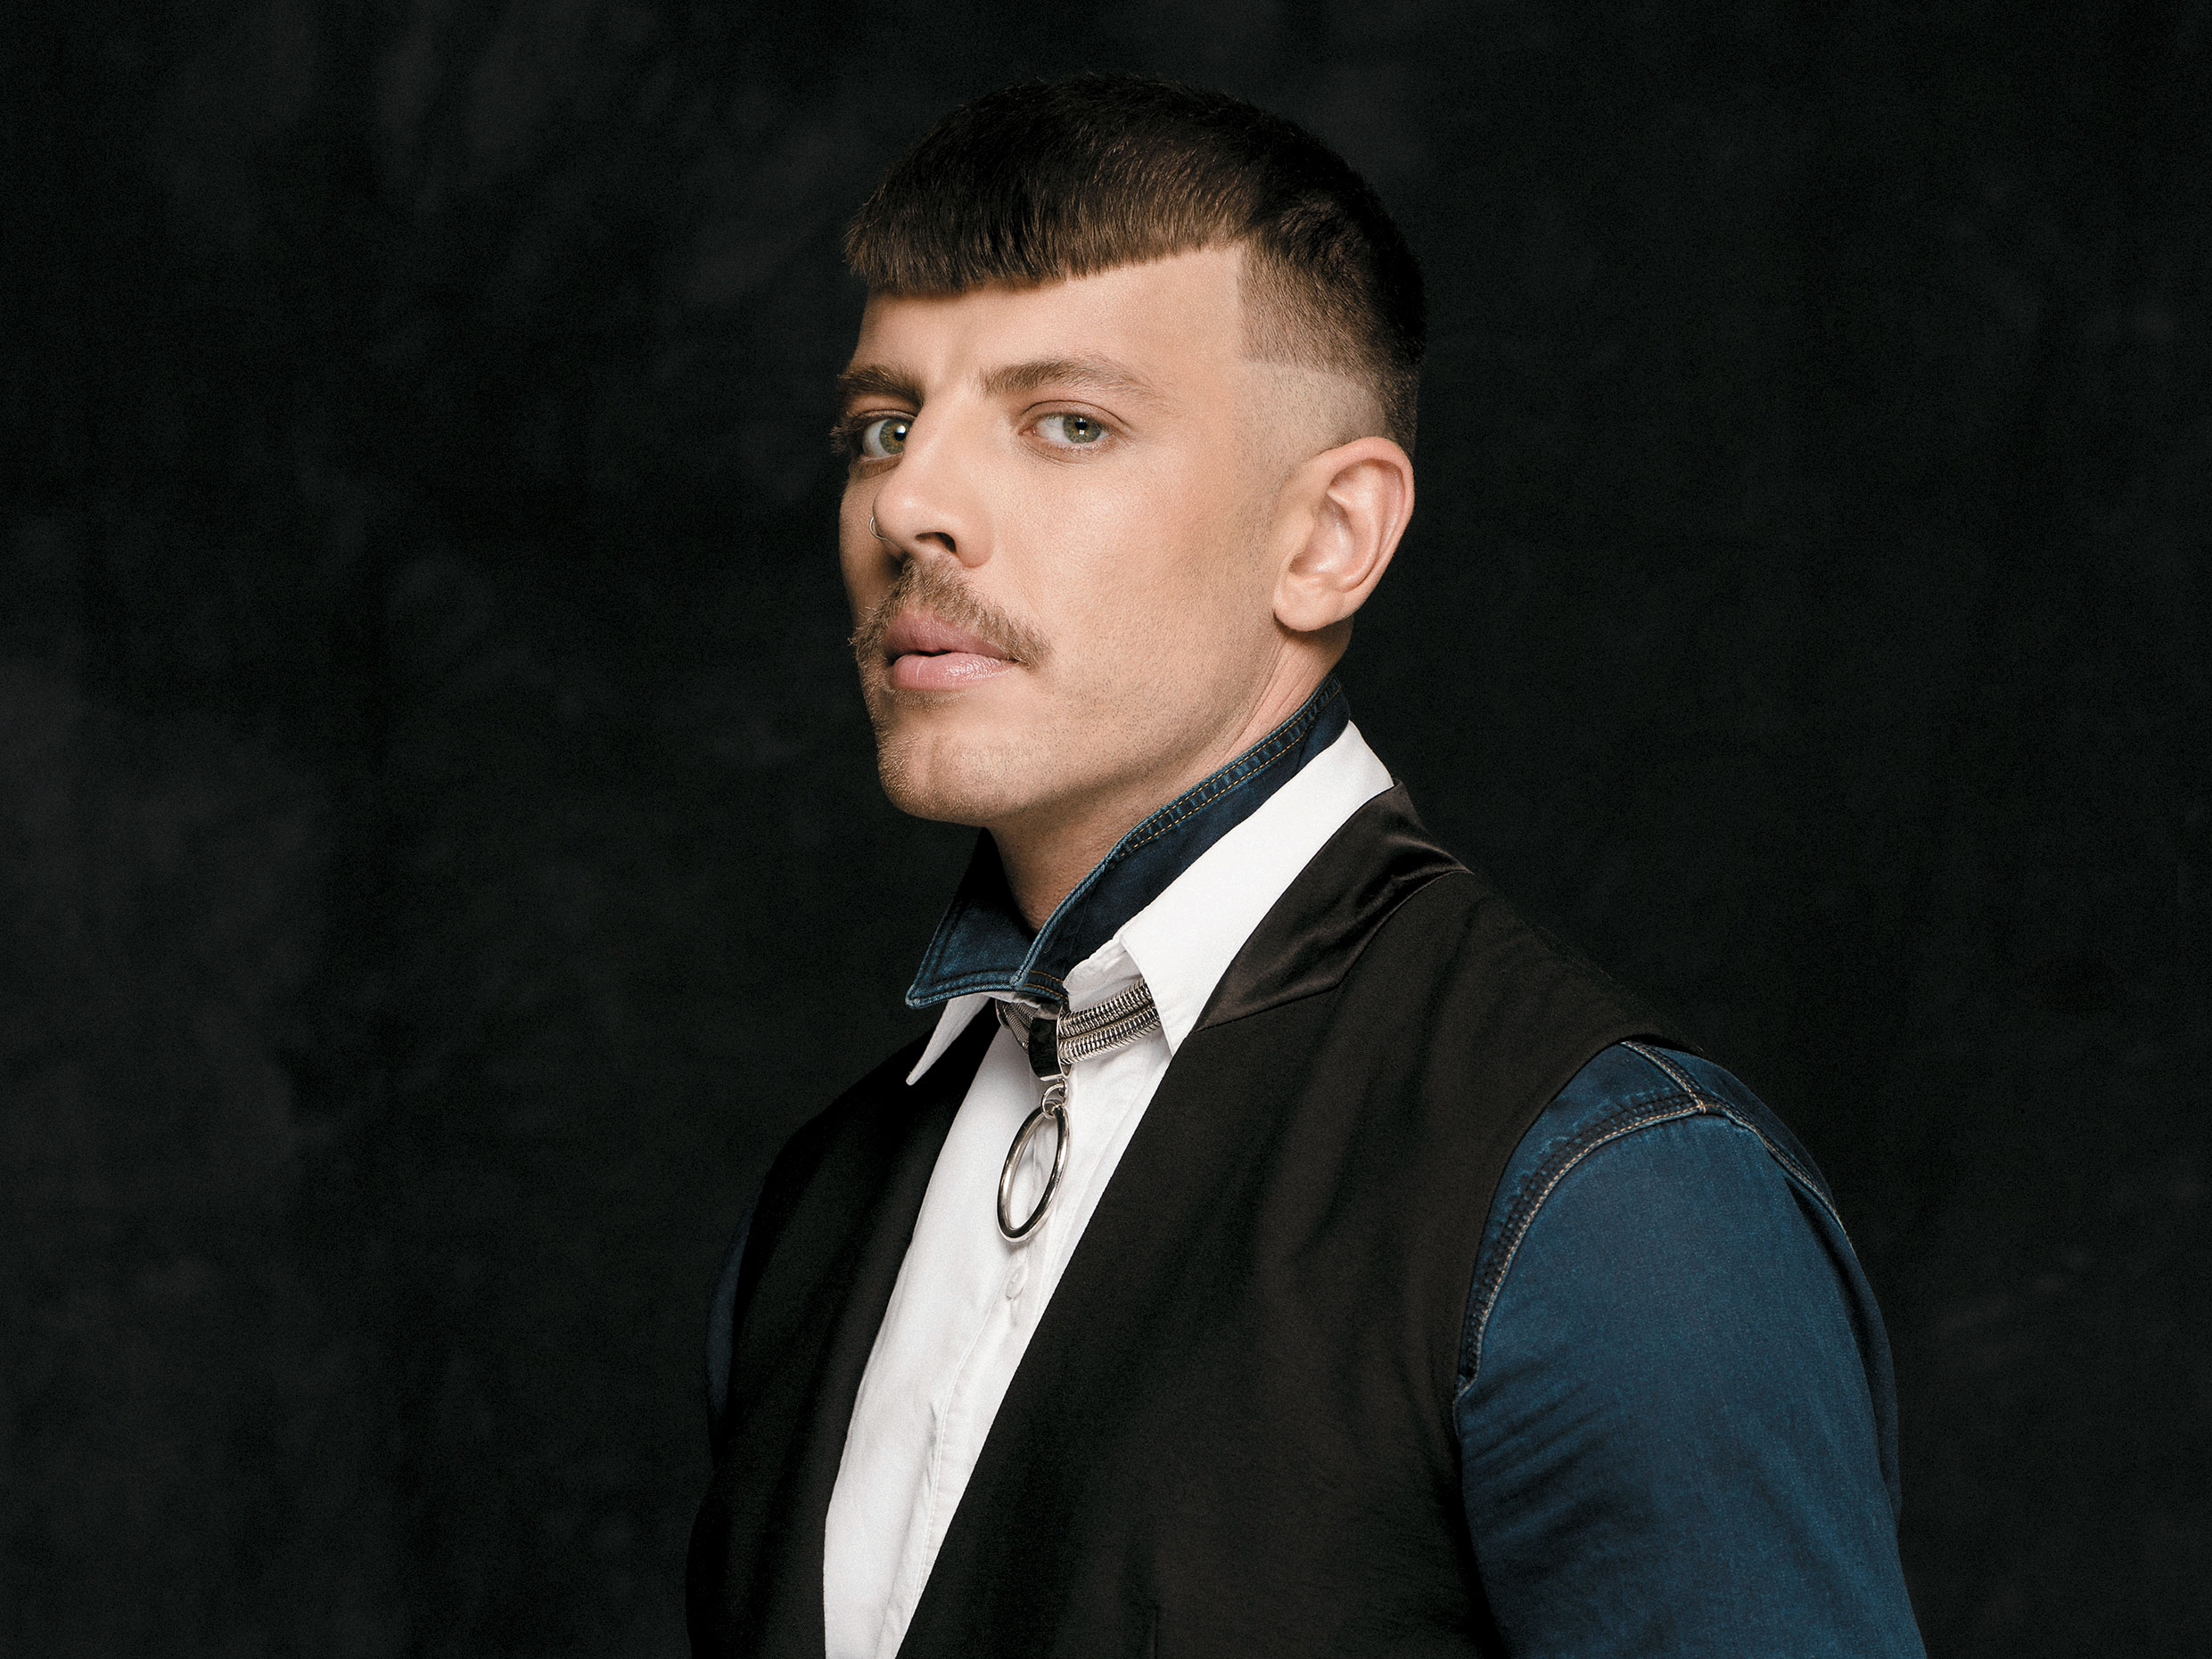 Tightly cropped hair makes quite a hard, aggressive statement, which is both sophisticated and masculine.